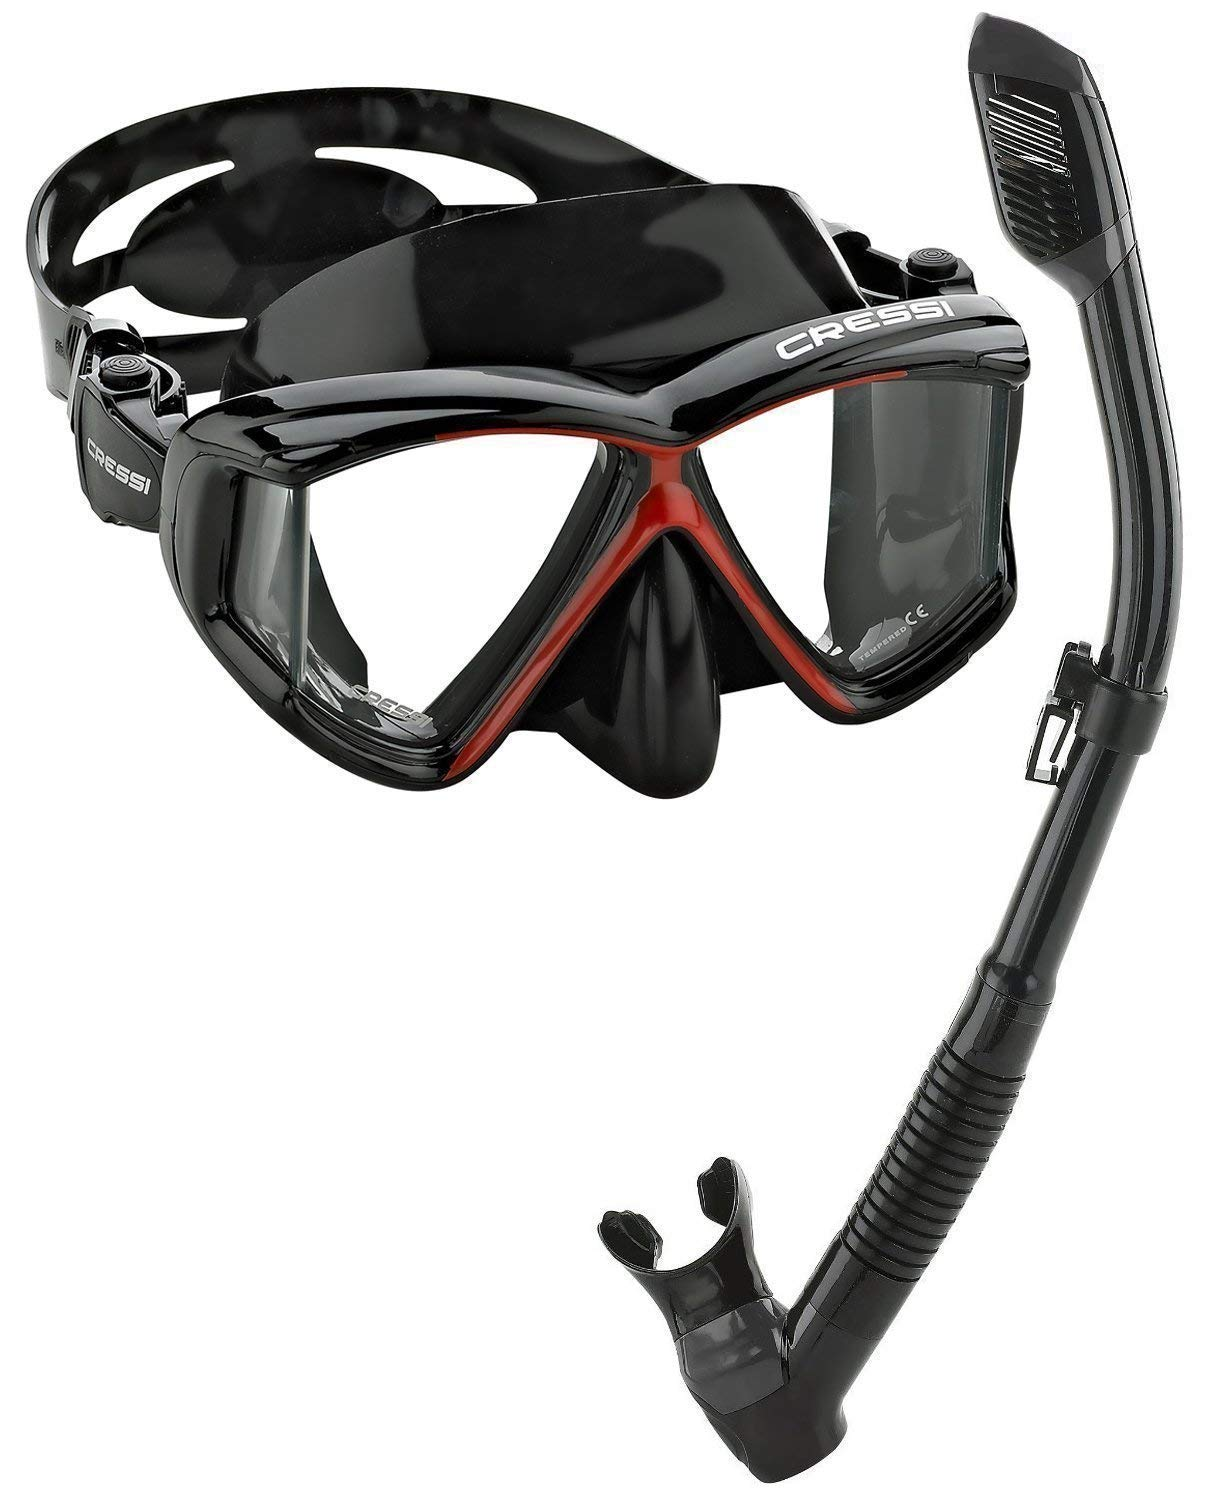 Cressi Pano 3 & Supernova Dry Combo, Black/red by Cressi